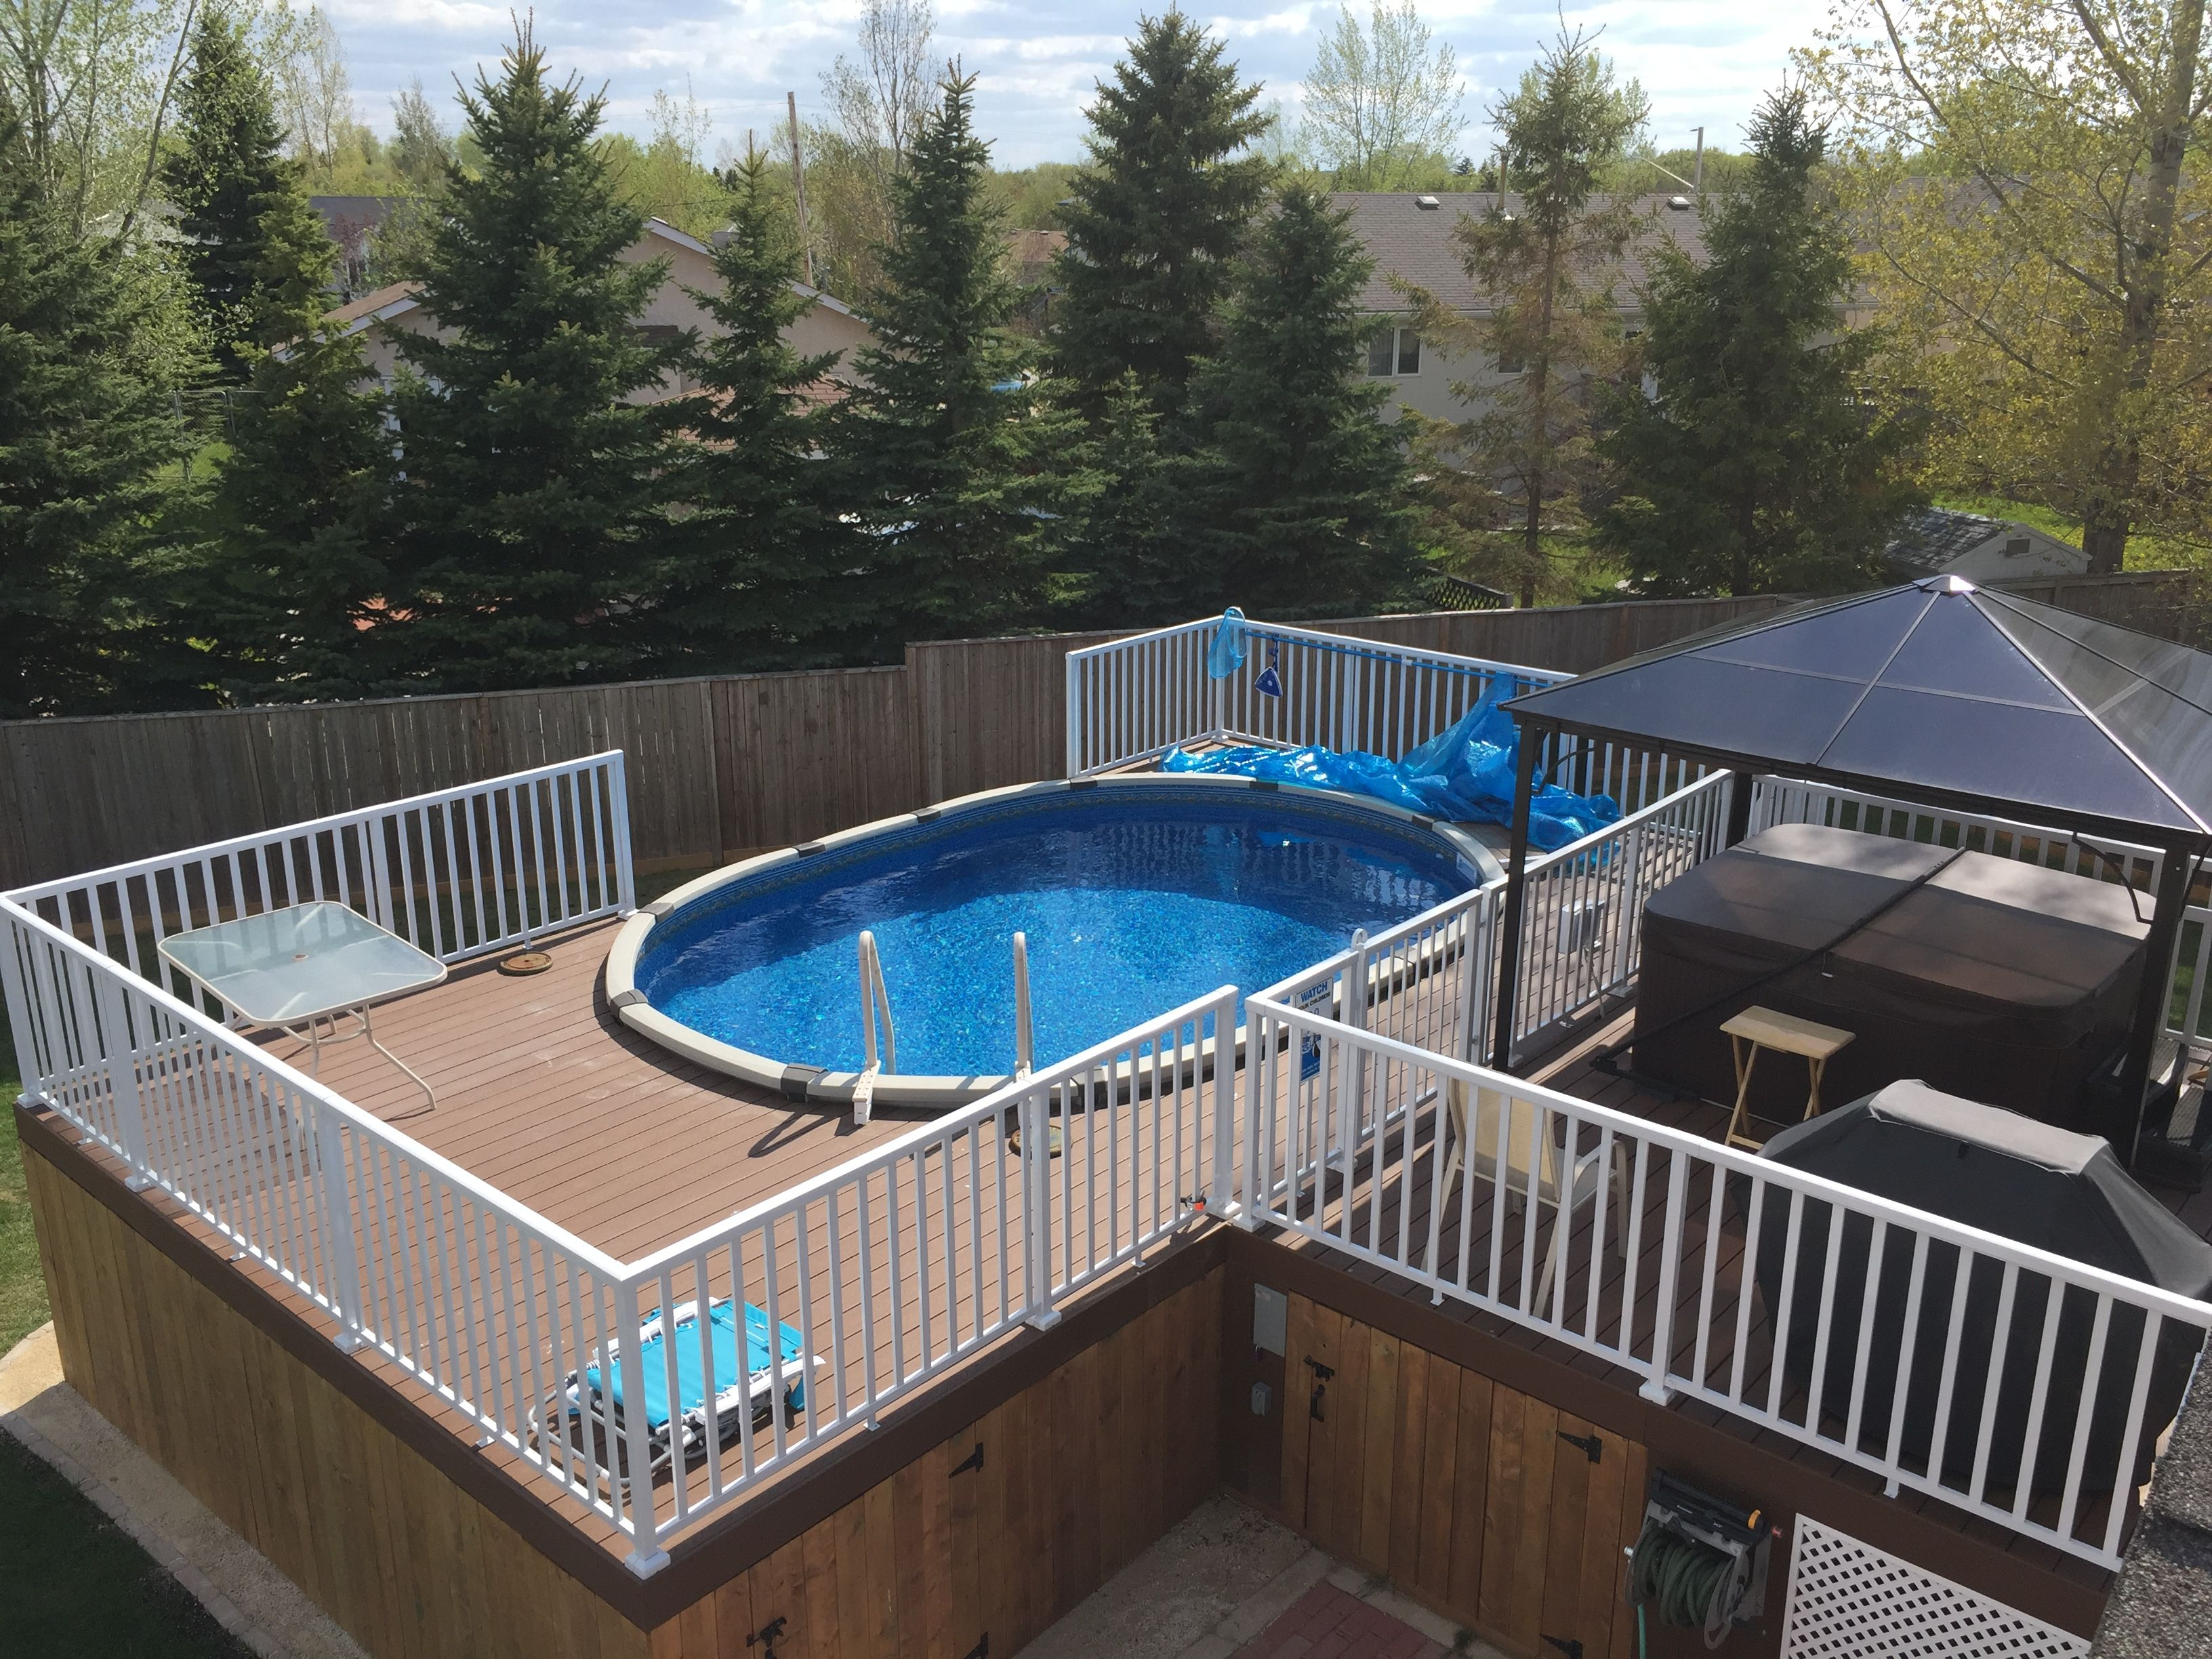 Pool Inspiration From Lorette Manitoba Here S One Of Our Best Seller 13 X 20 Eternia Salt Friendly Pool